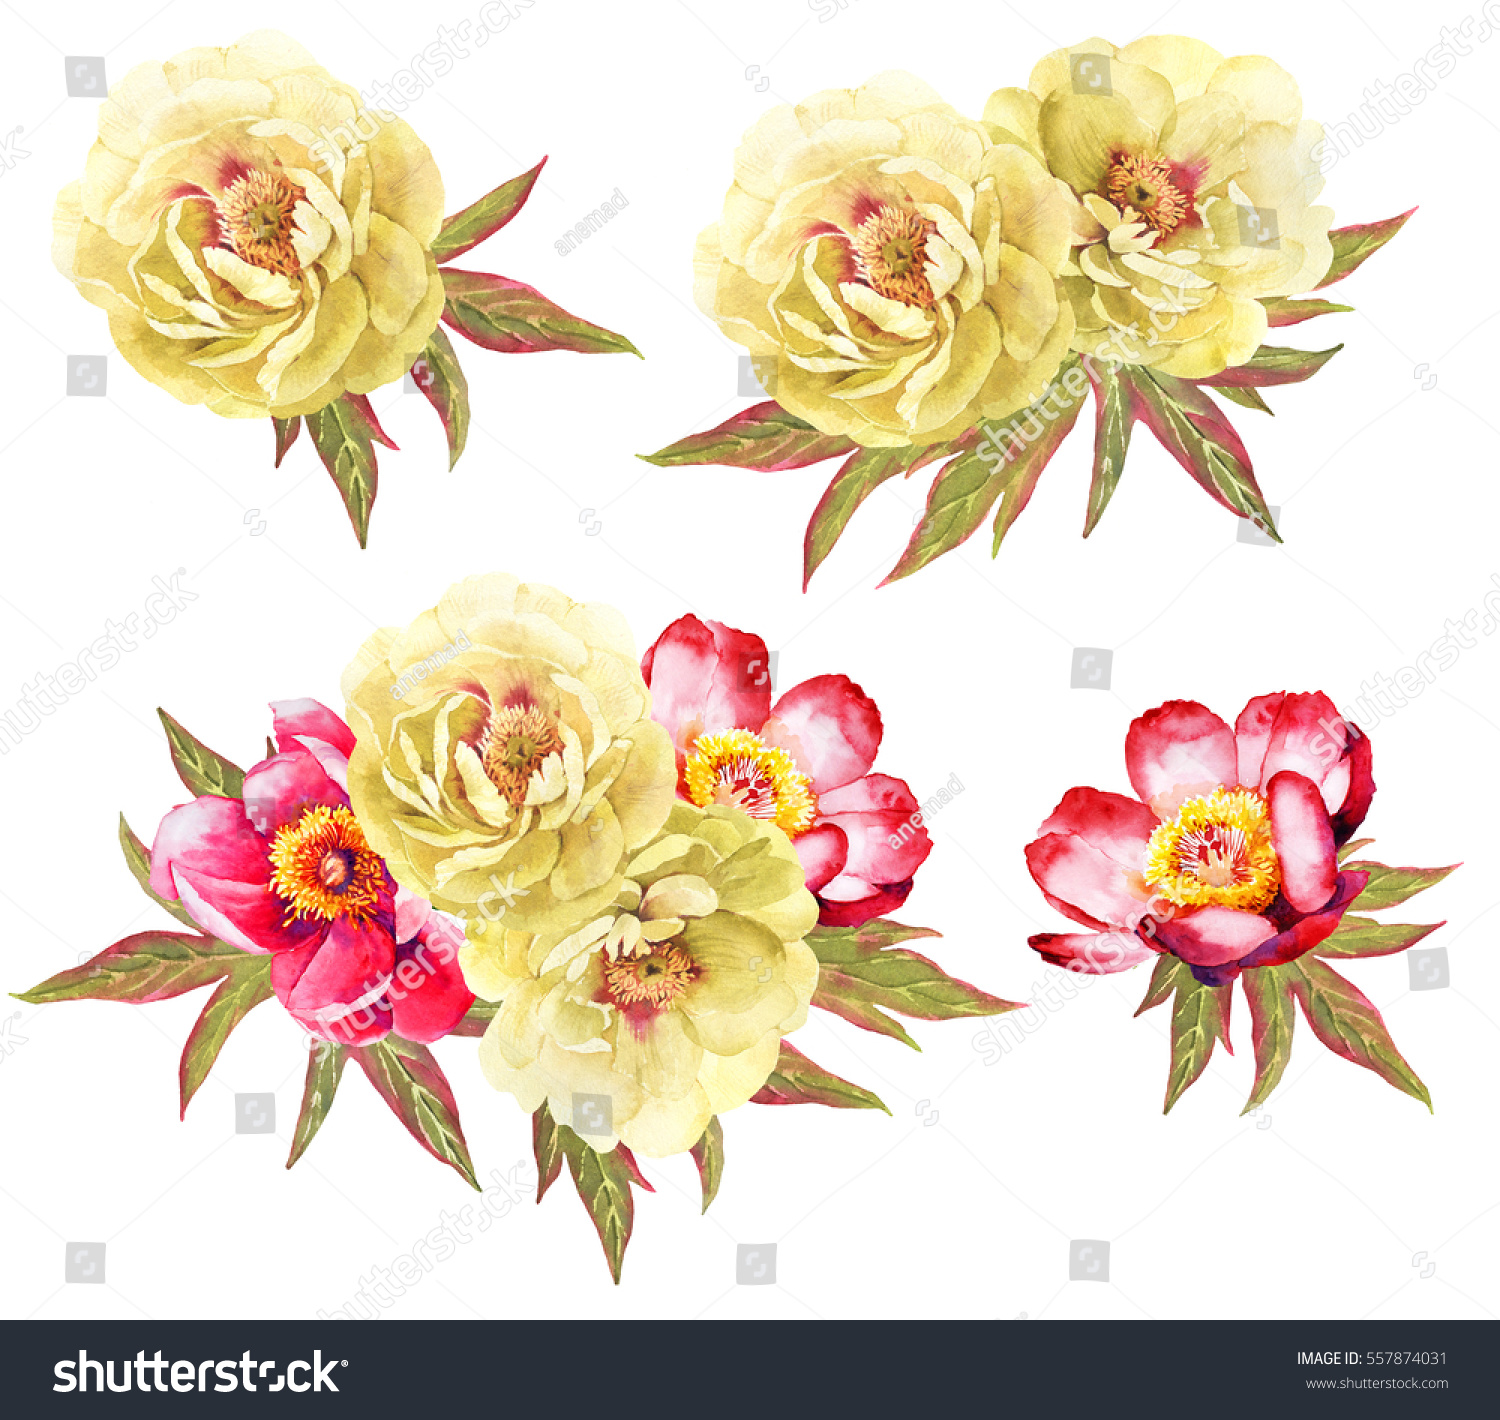 Yellow Red Peonies Flower Watercolor Illustration Stock Illustration